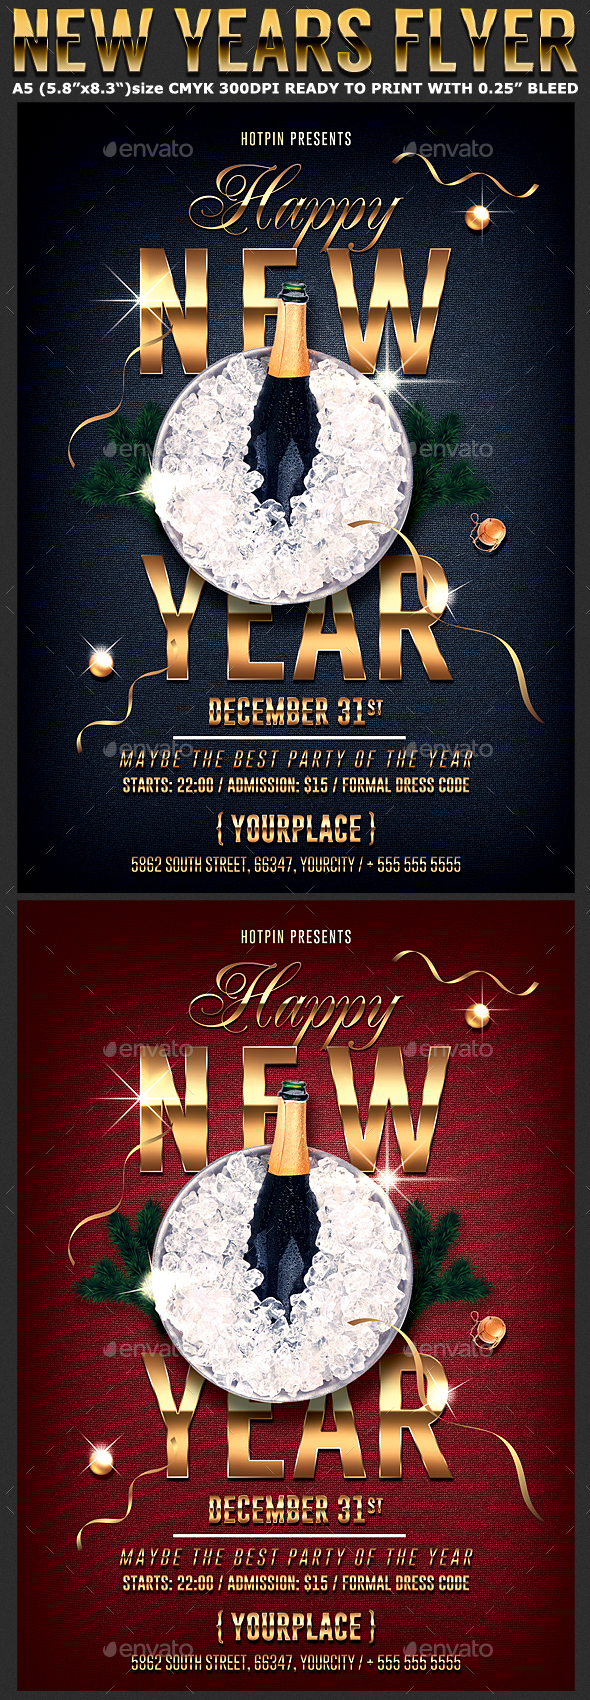 Classy New Year Flyer Template